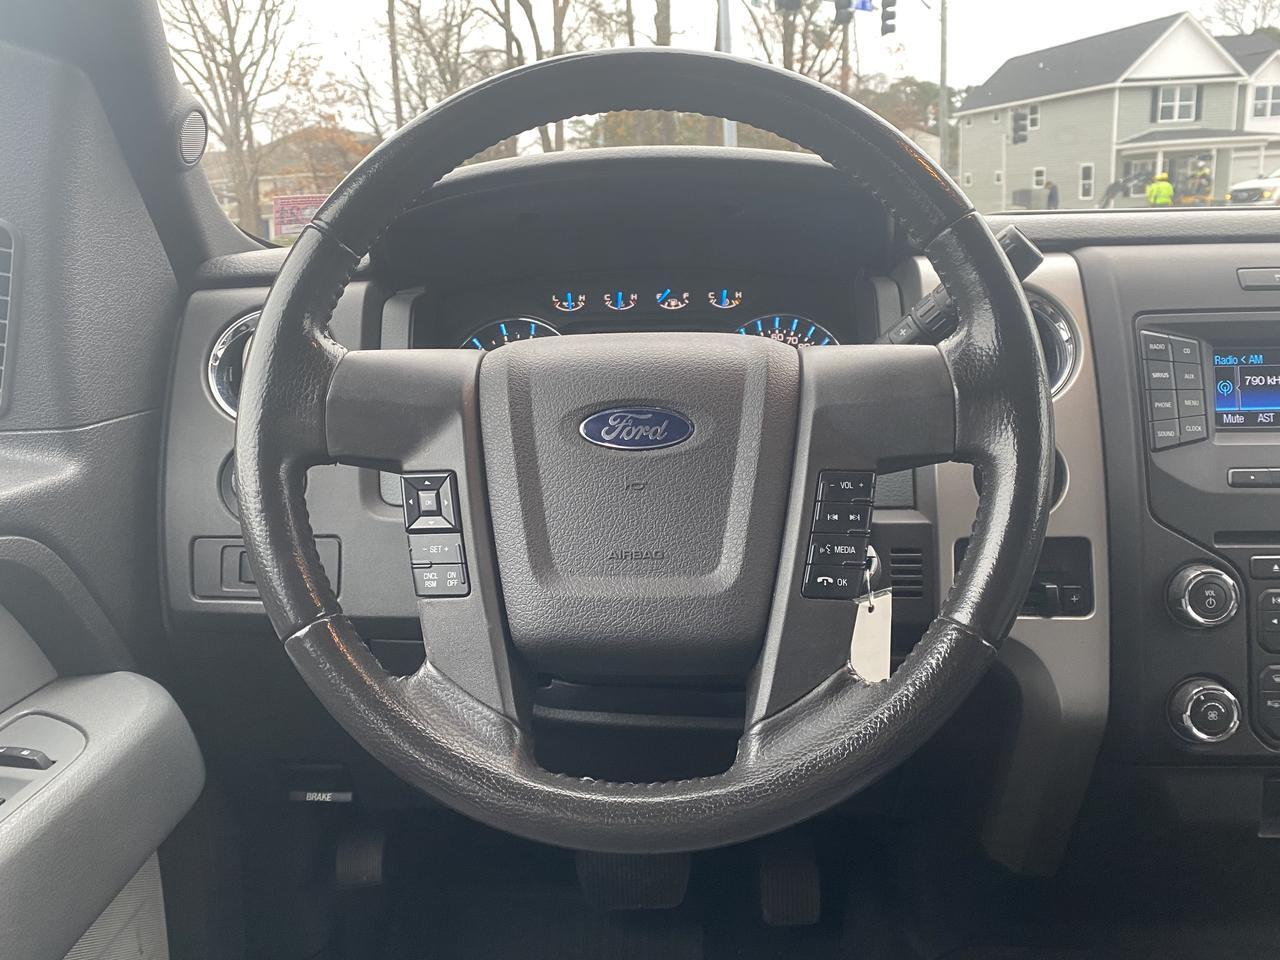 2013 FORD F-150 XLT SUPERCREW 4X4, WARRANTY, BLUETOOTH, SIRIUS RADIO, AUX/USB PORT, RUNNING BOARDS! Norfolk VA